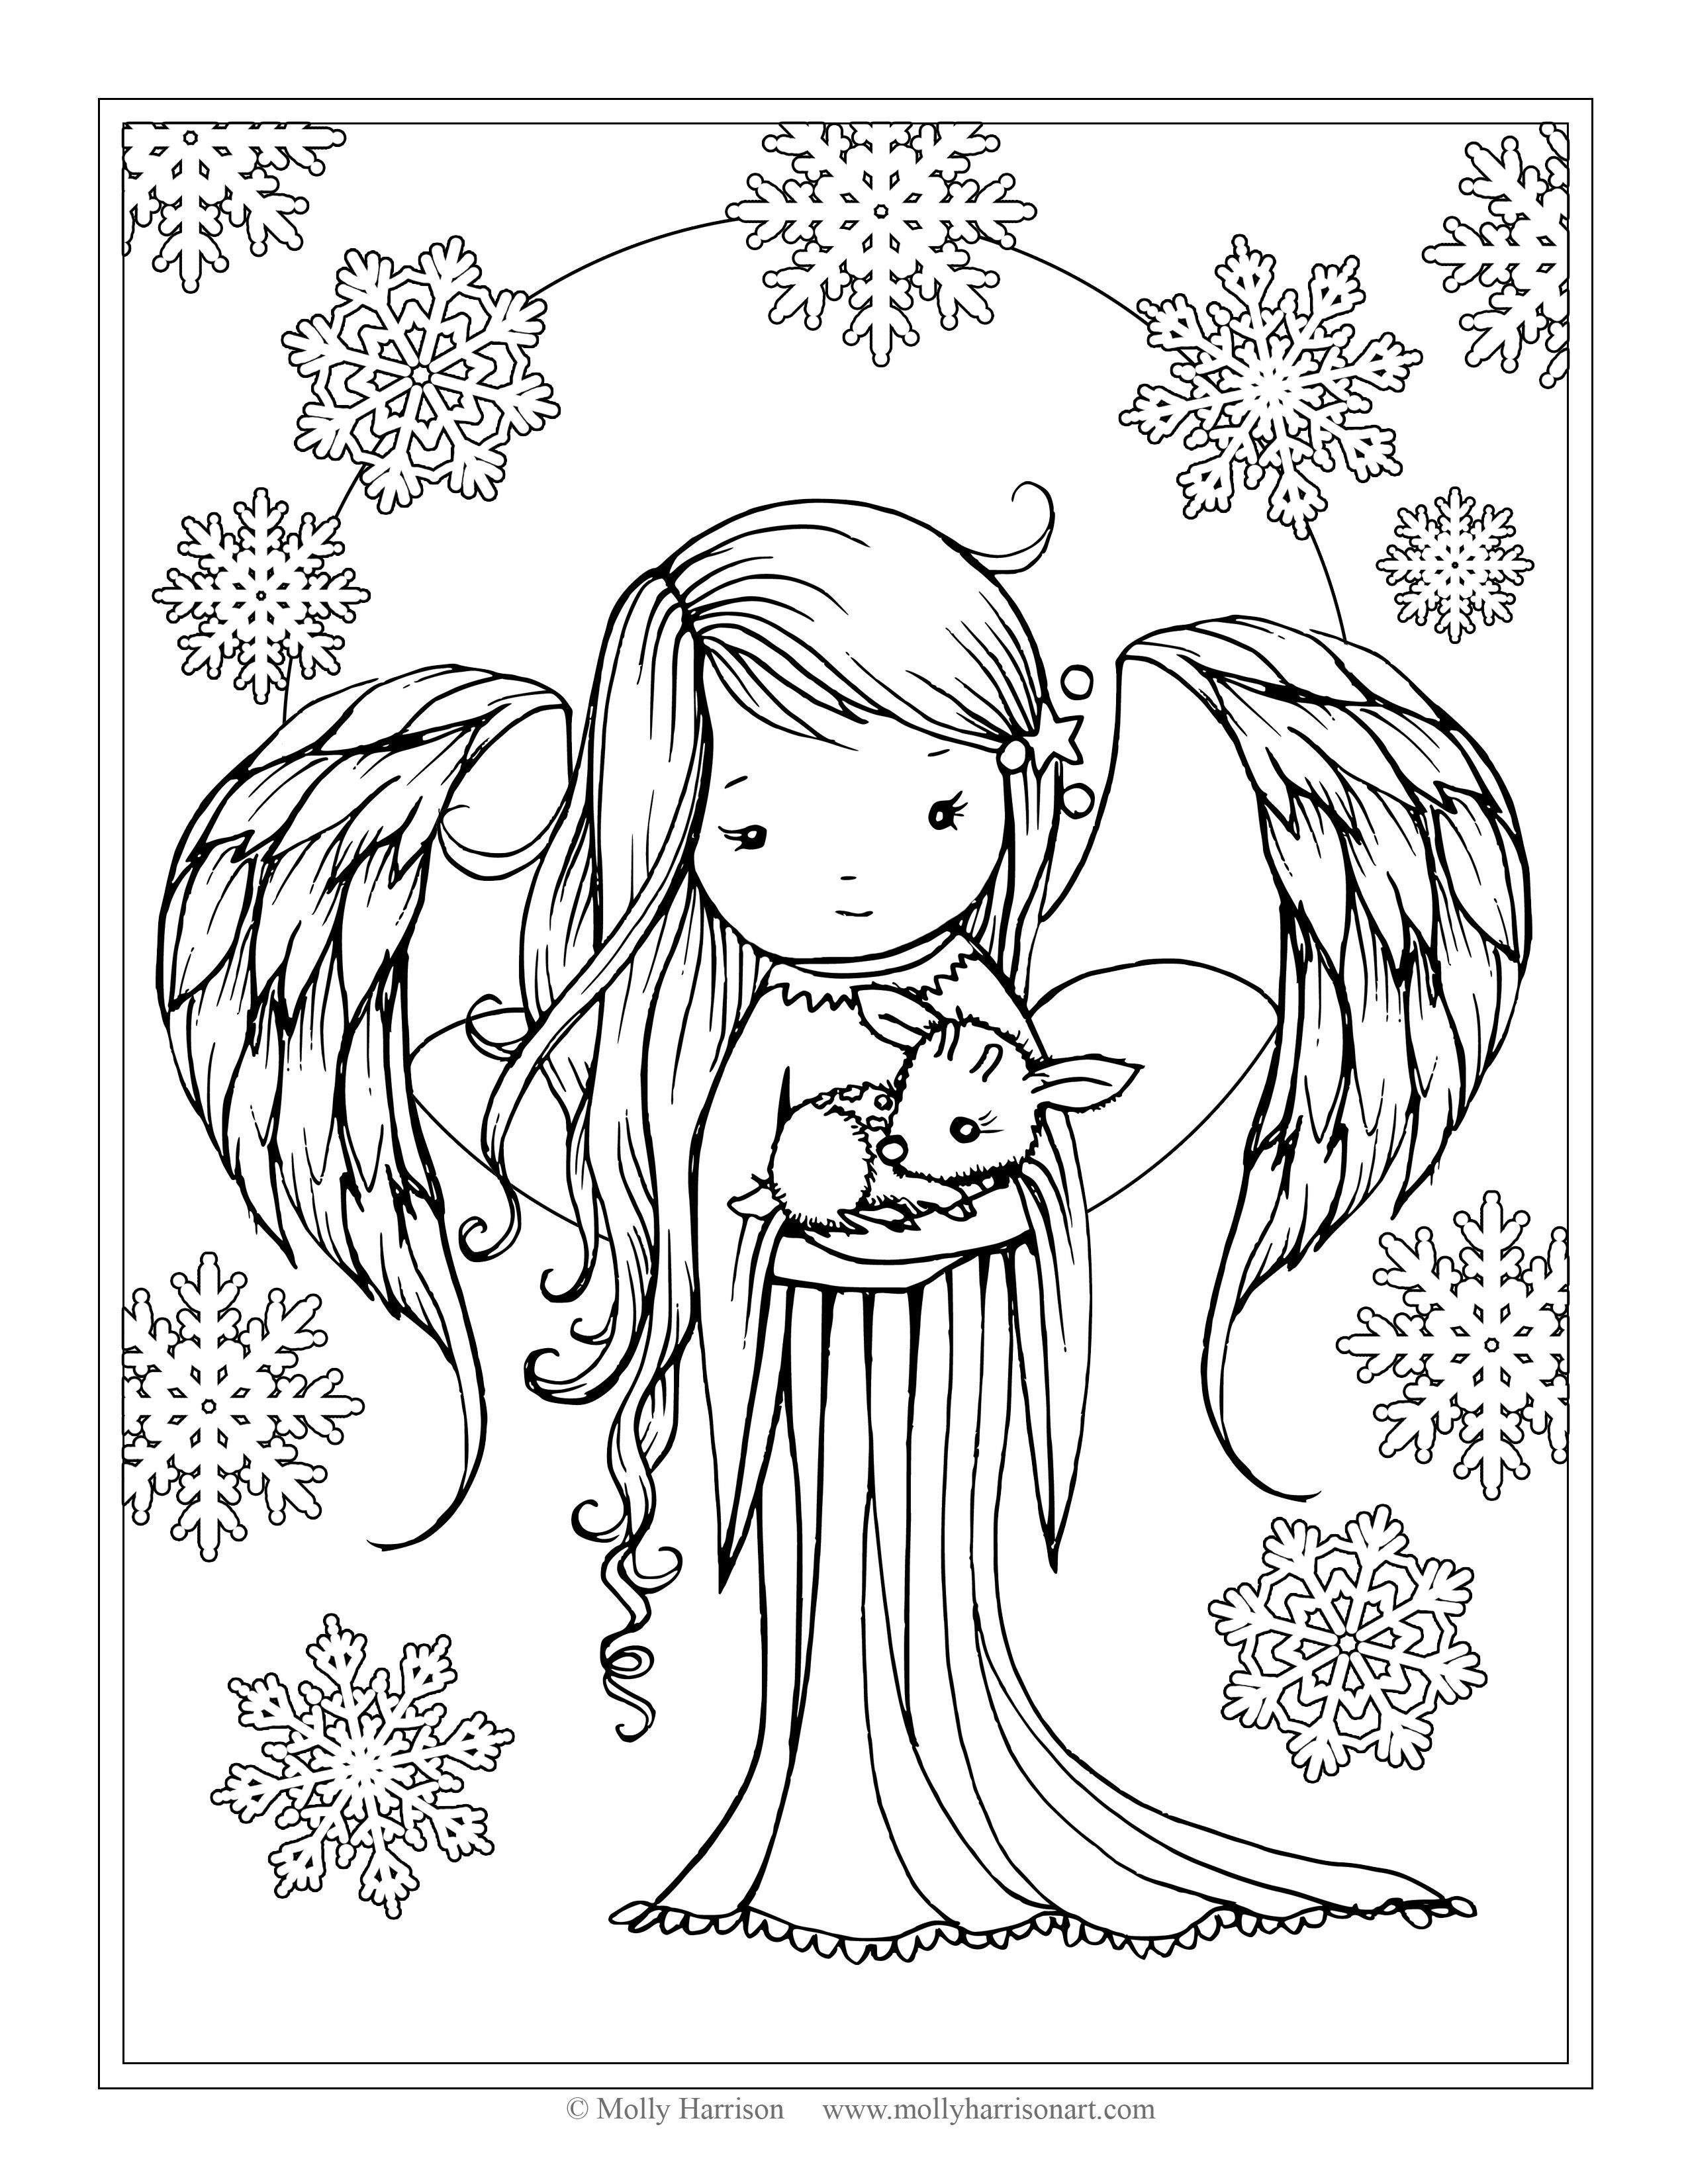 Angel Holding Fawn From The Book Whimsical Winter